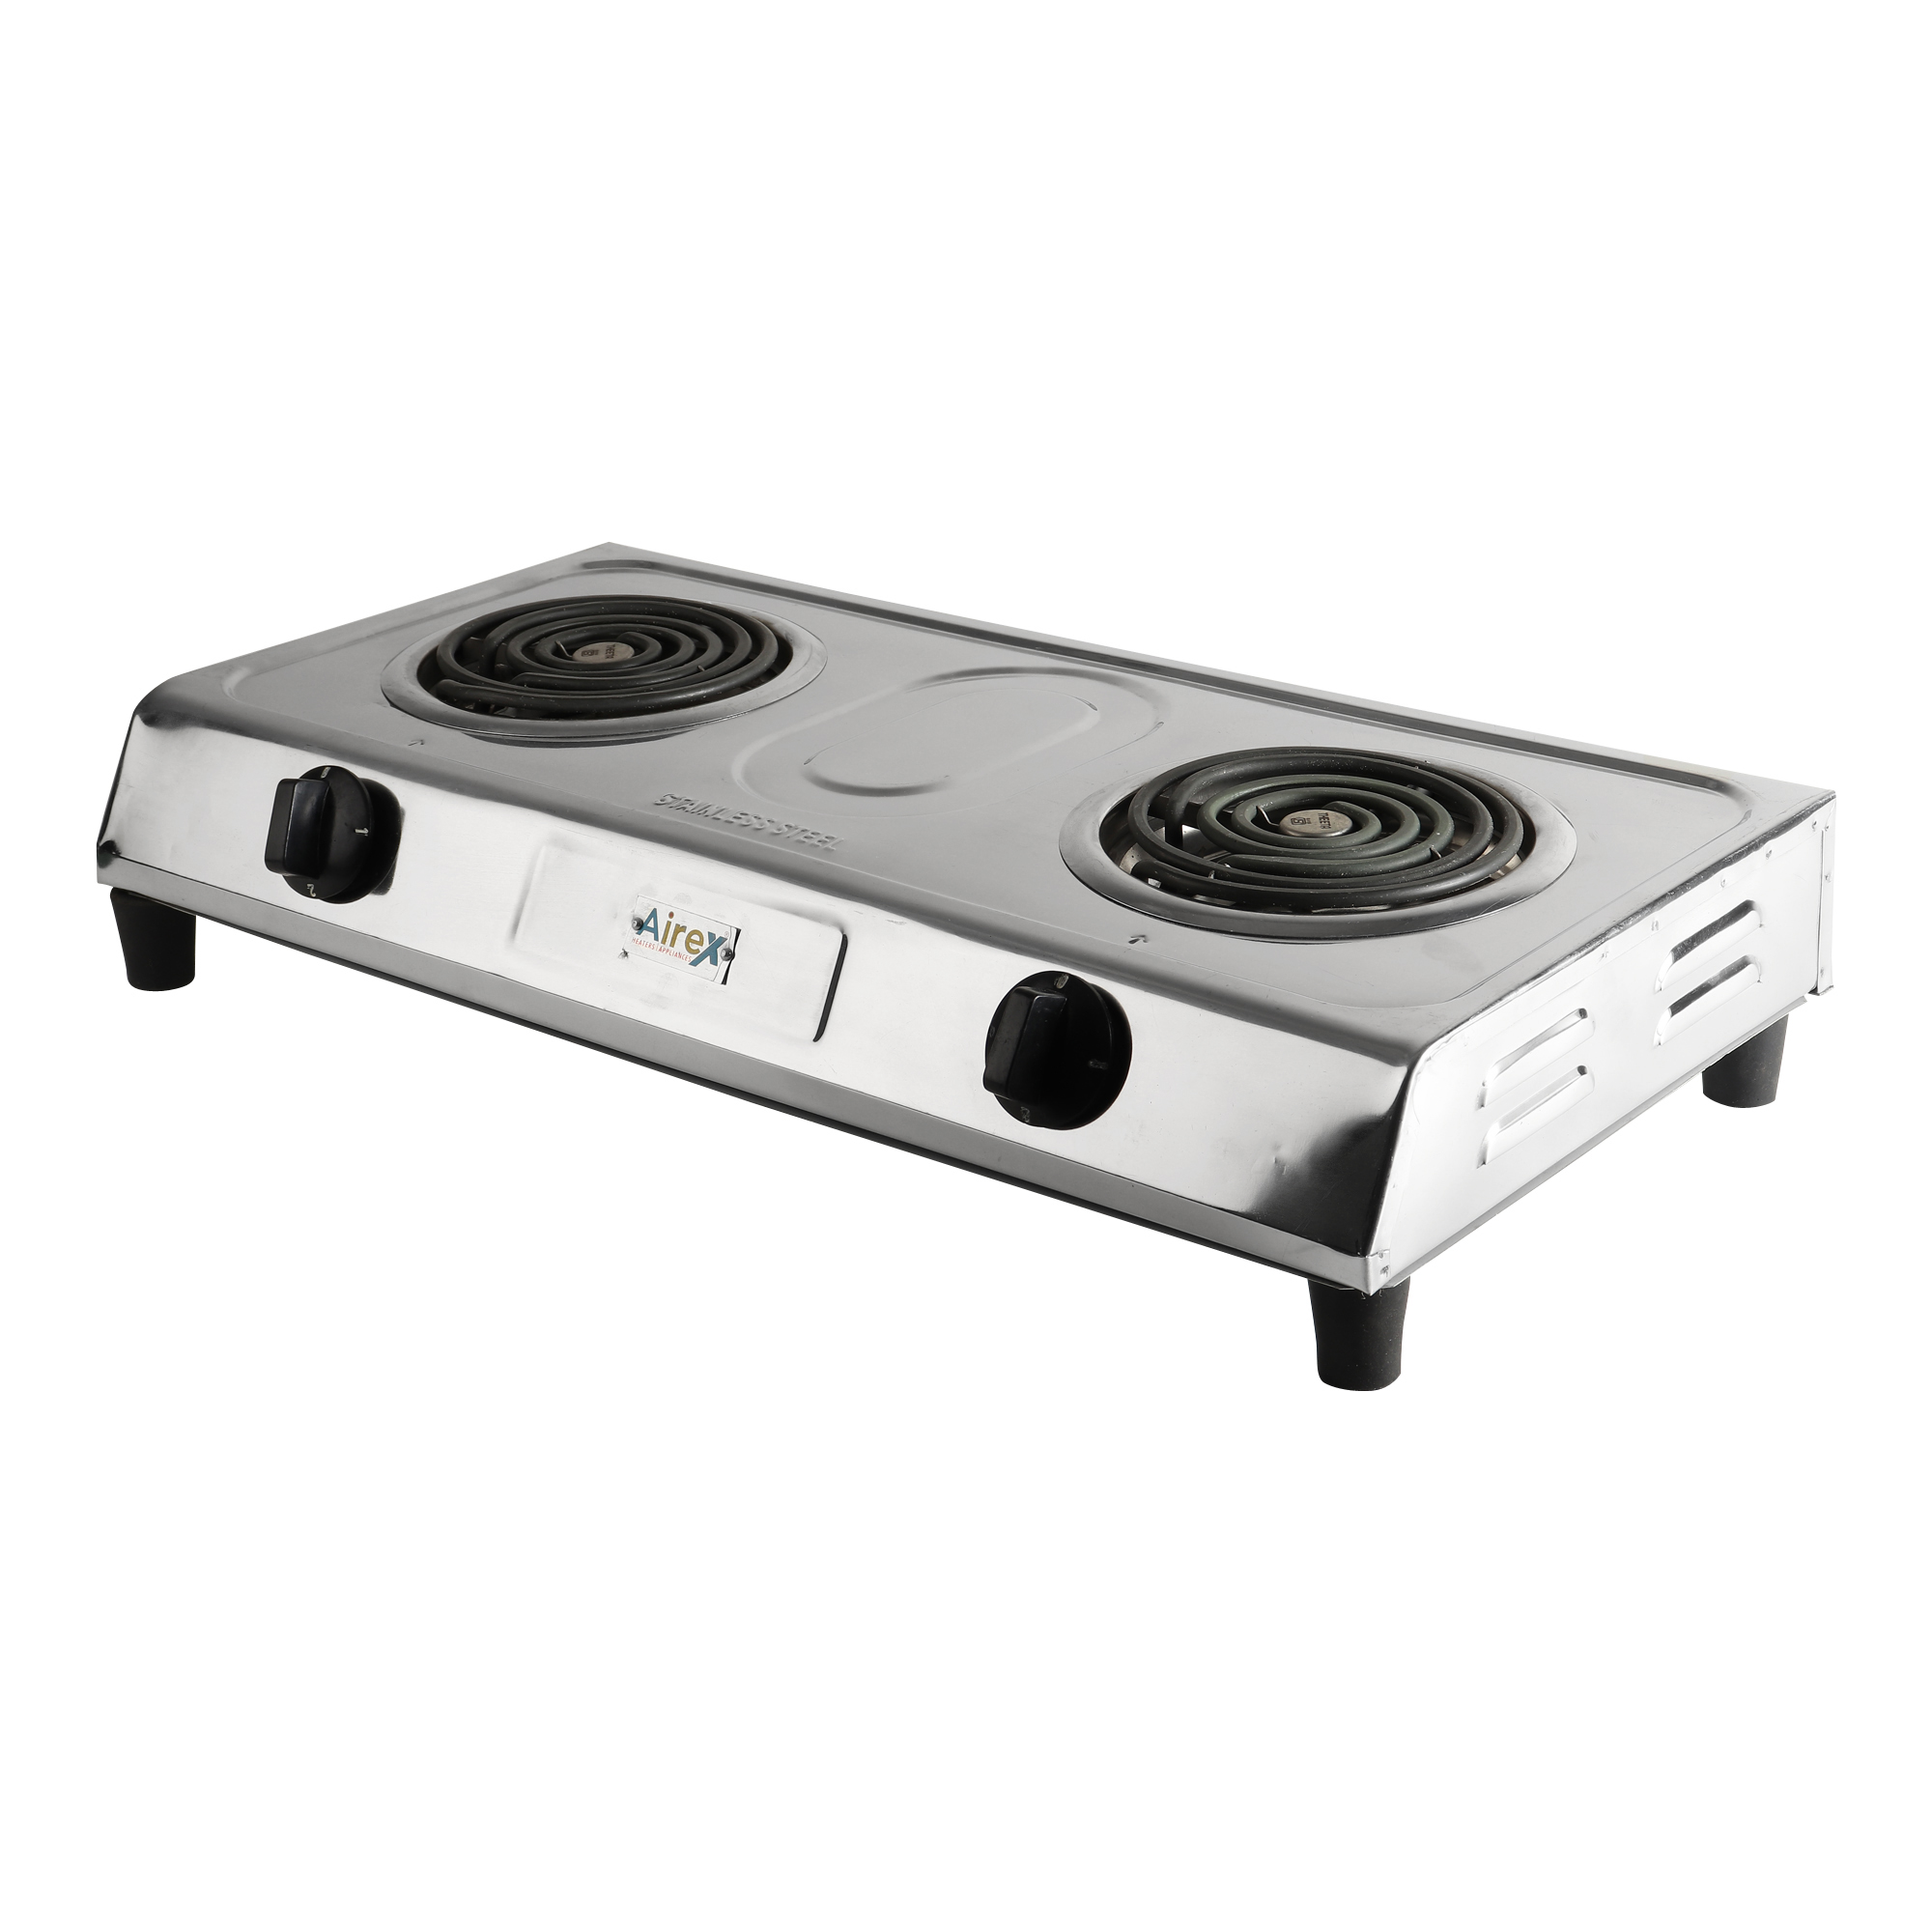 DOUBLE HOTPLATE STAINLESS STEEL